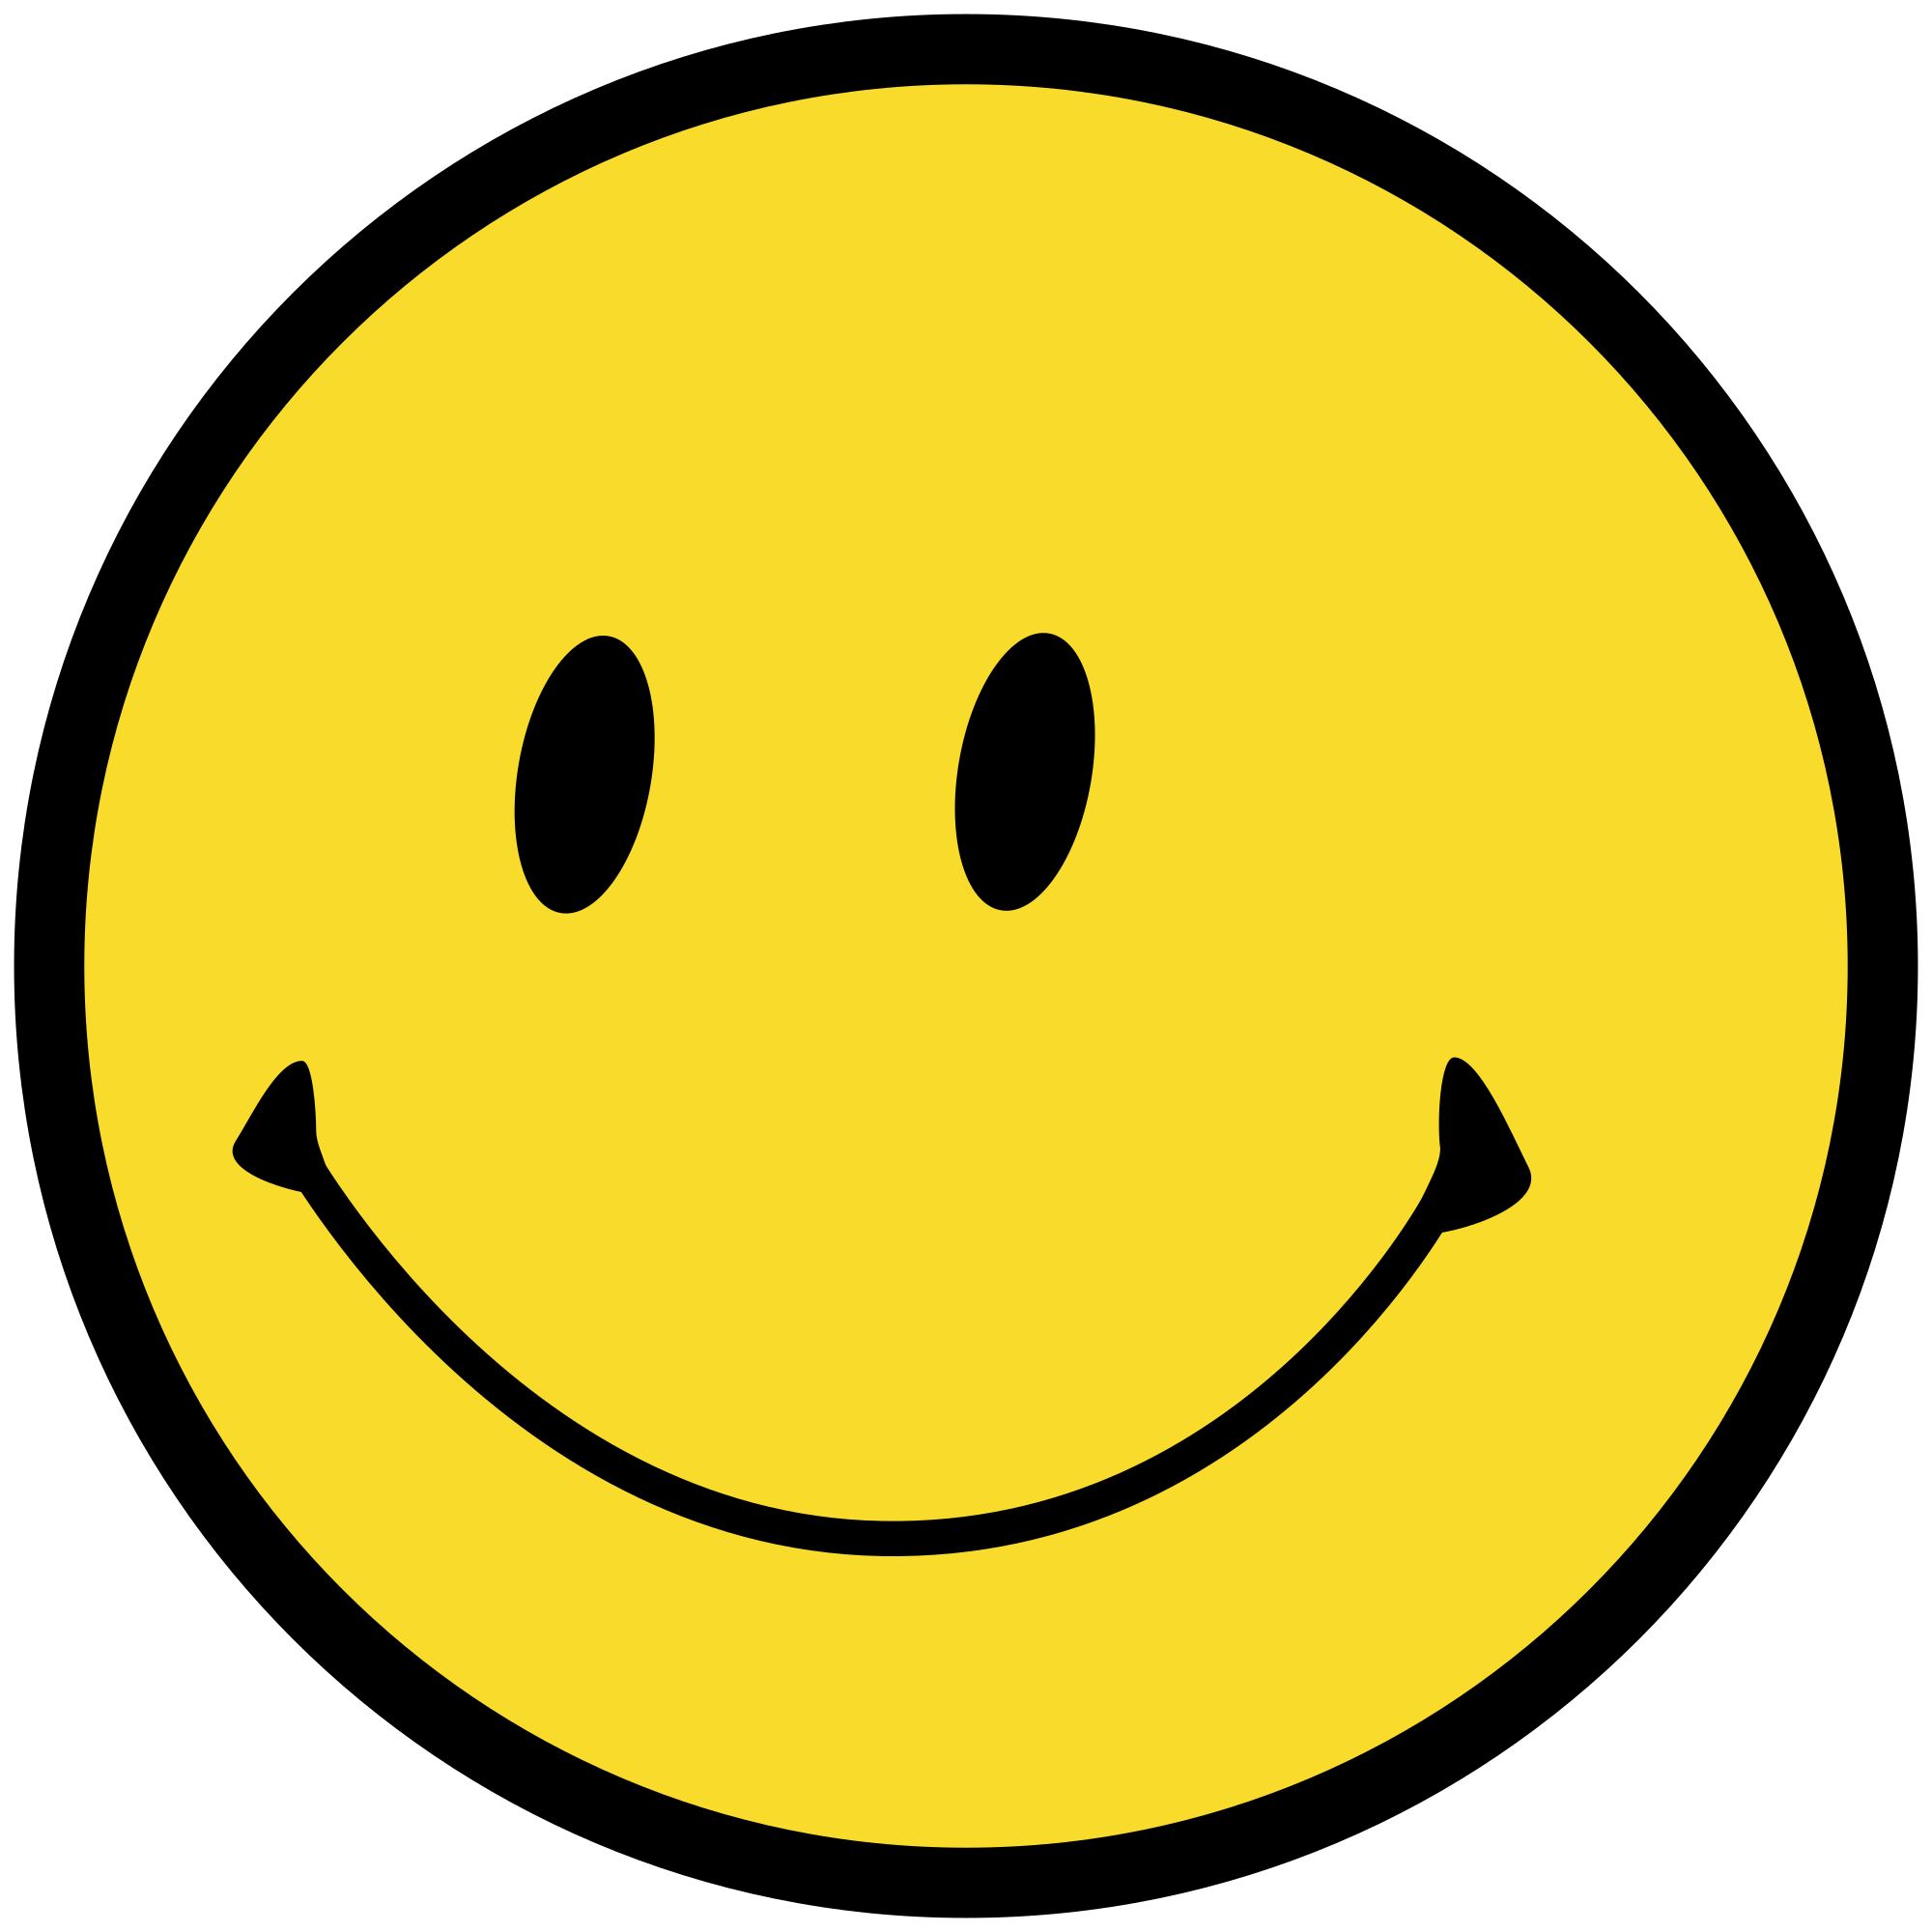 Smiley Backgrounds, Compatible - PC, Mobile, Gadgets| 2000x2000 px